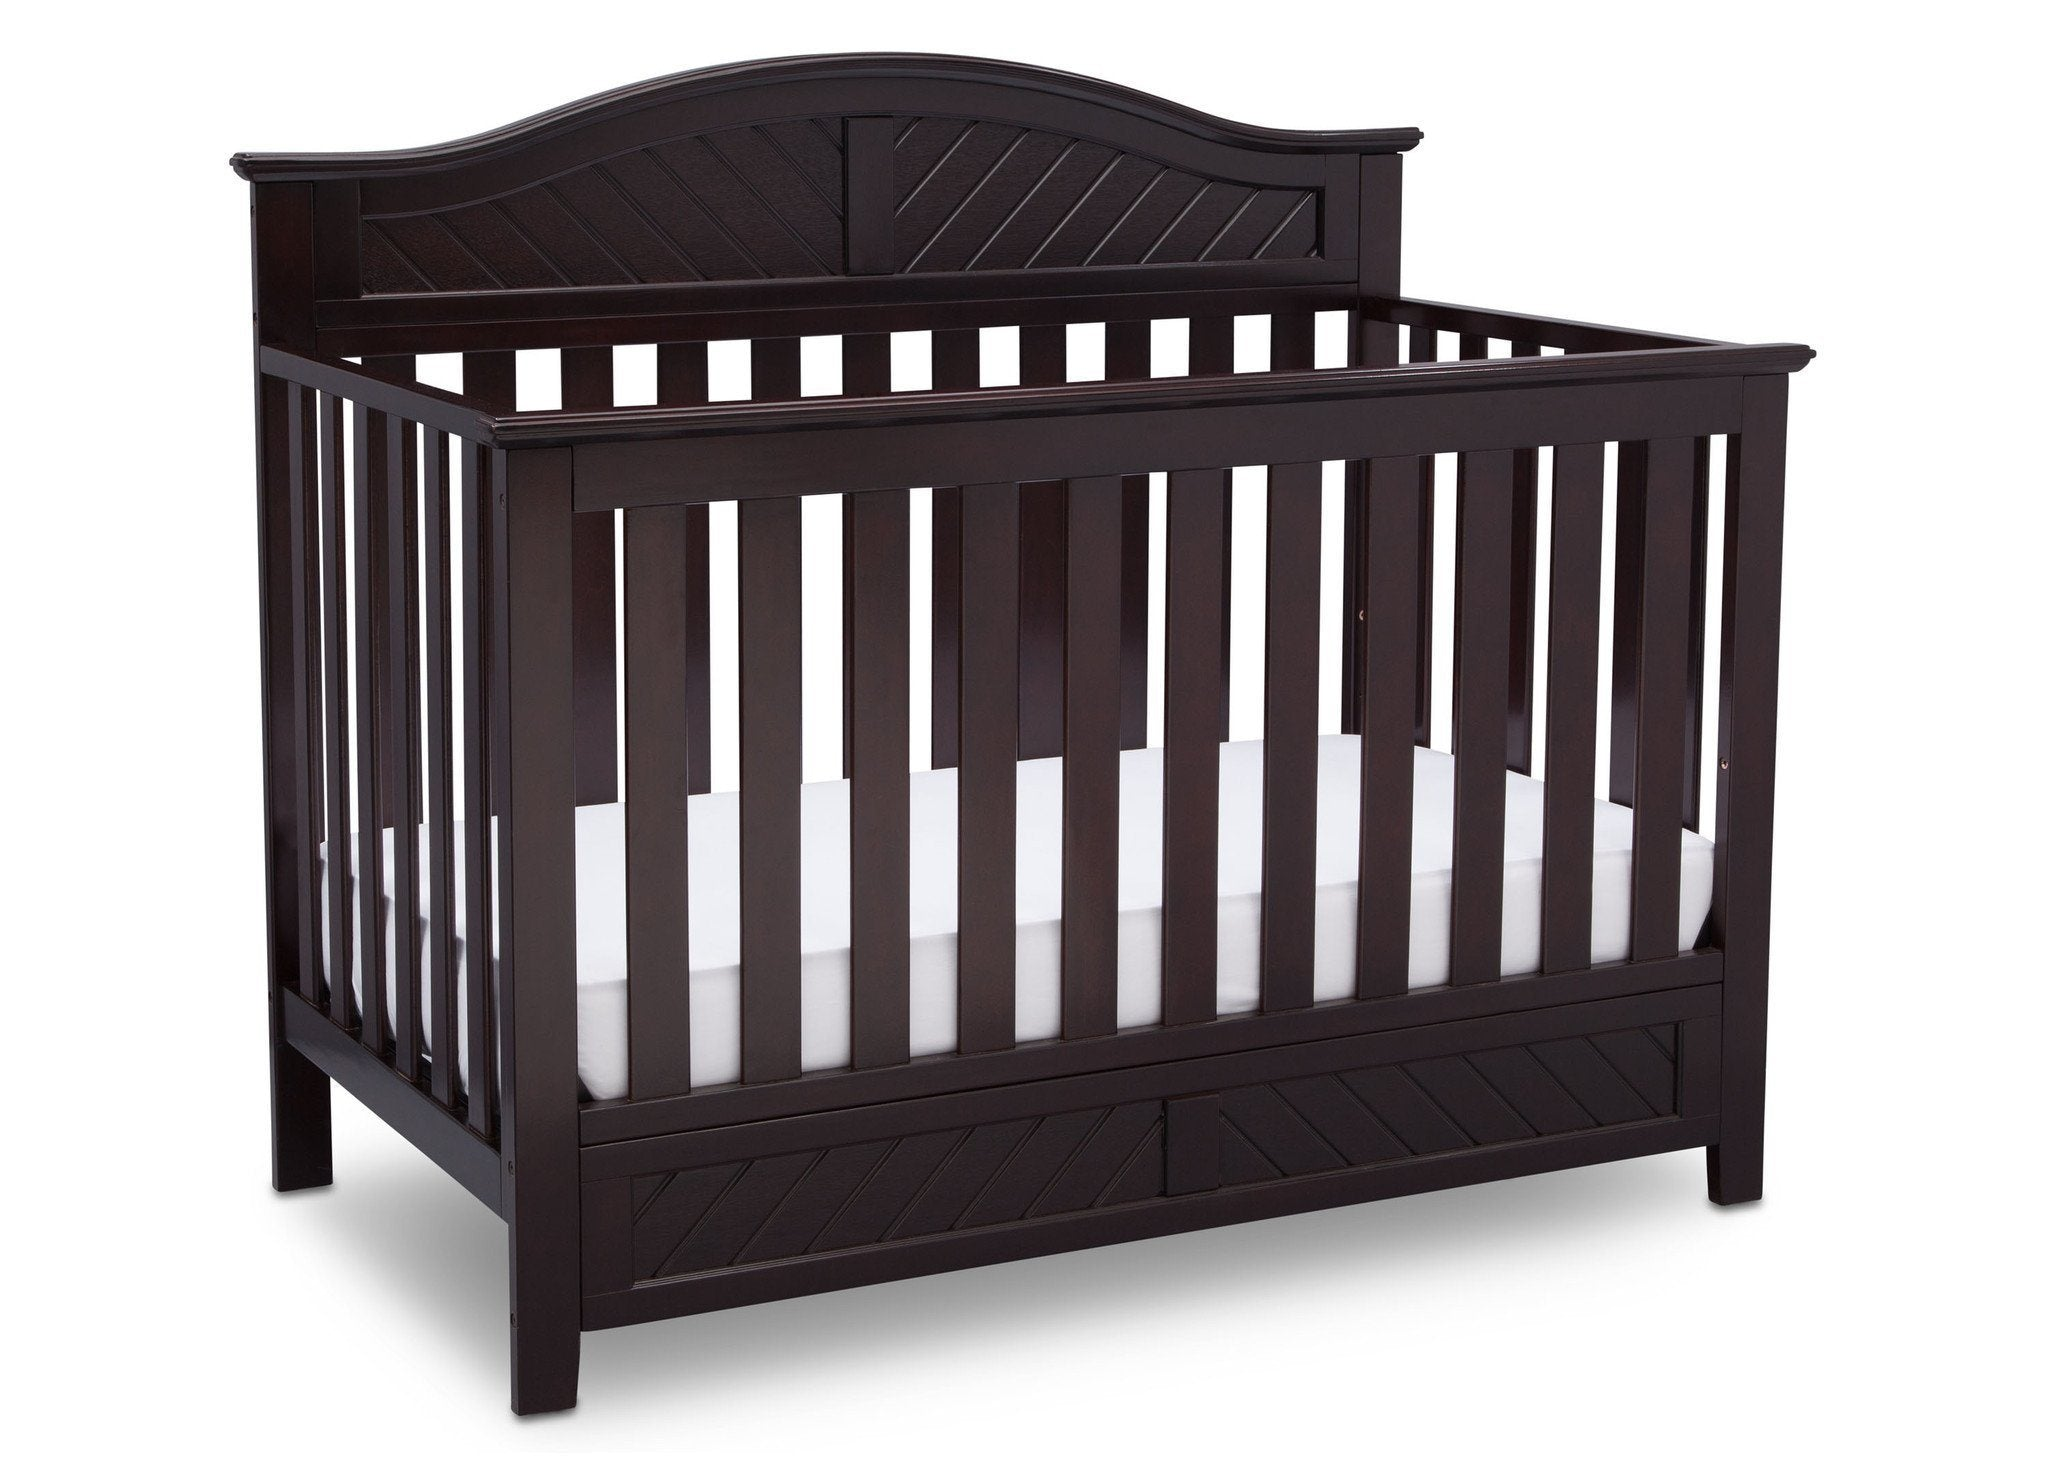 Delta Children Dark Espresso (958) Bennington Elite Curved 4-in-1 Crib Side View b3b